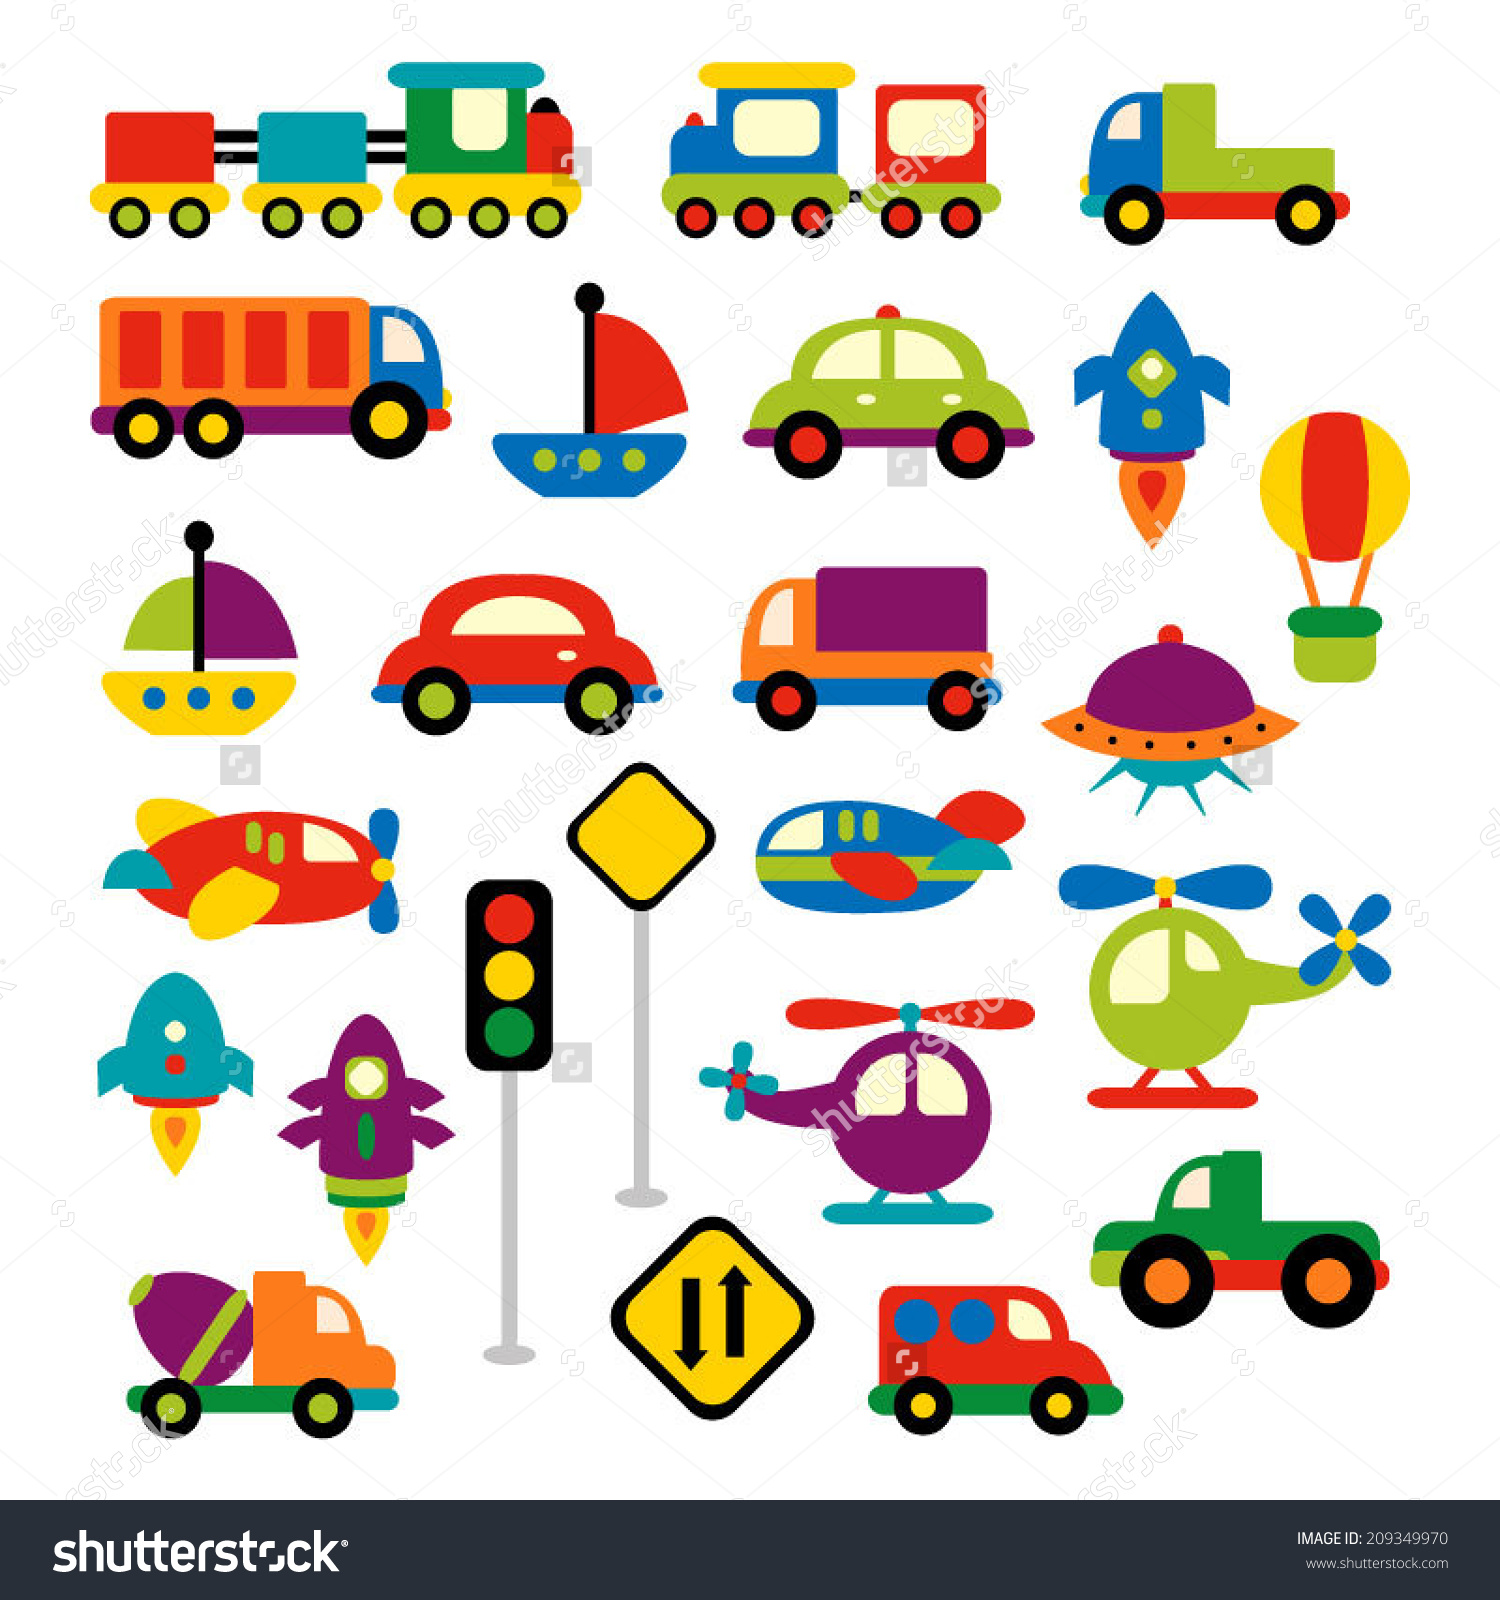 Trucks and plane clipart vector royalty free Transportation Vector Clip Art Bright Colors Stock Vector ... vector royalty free